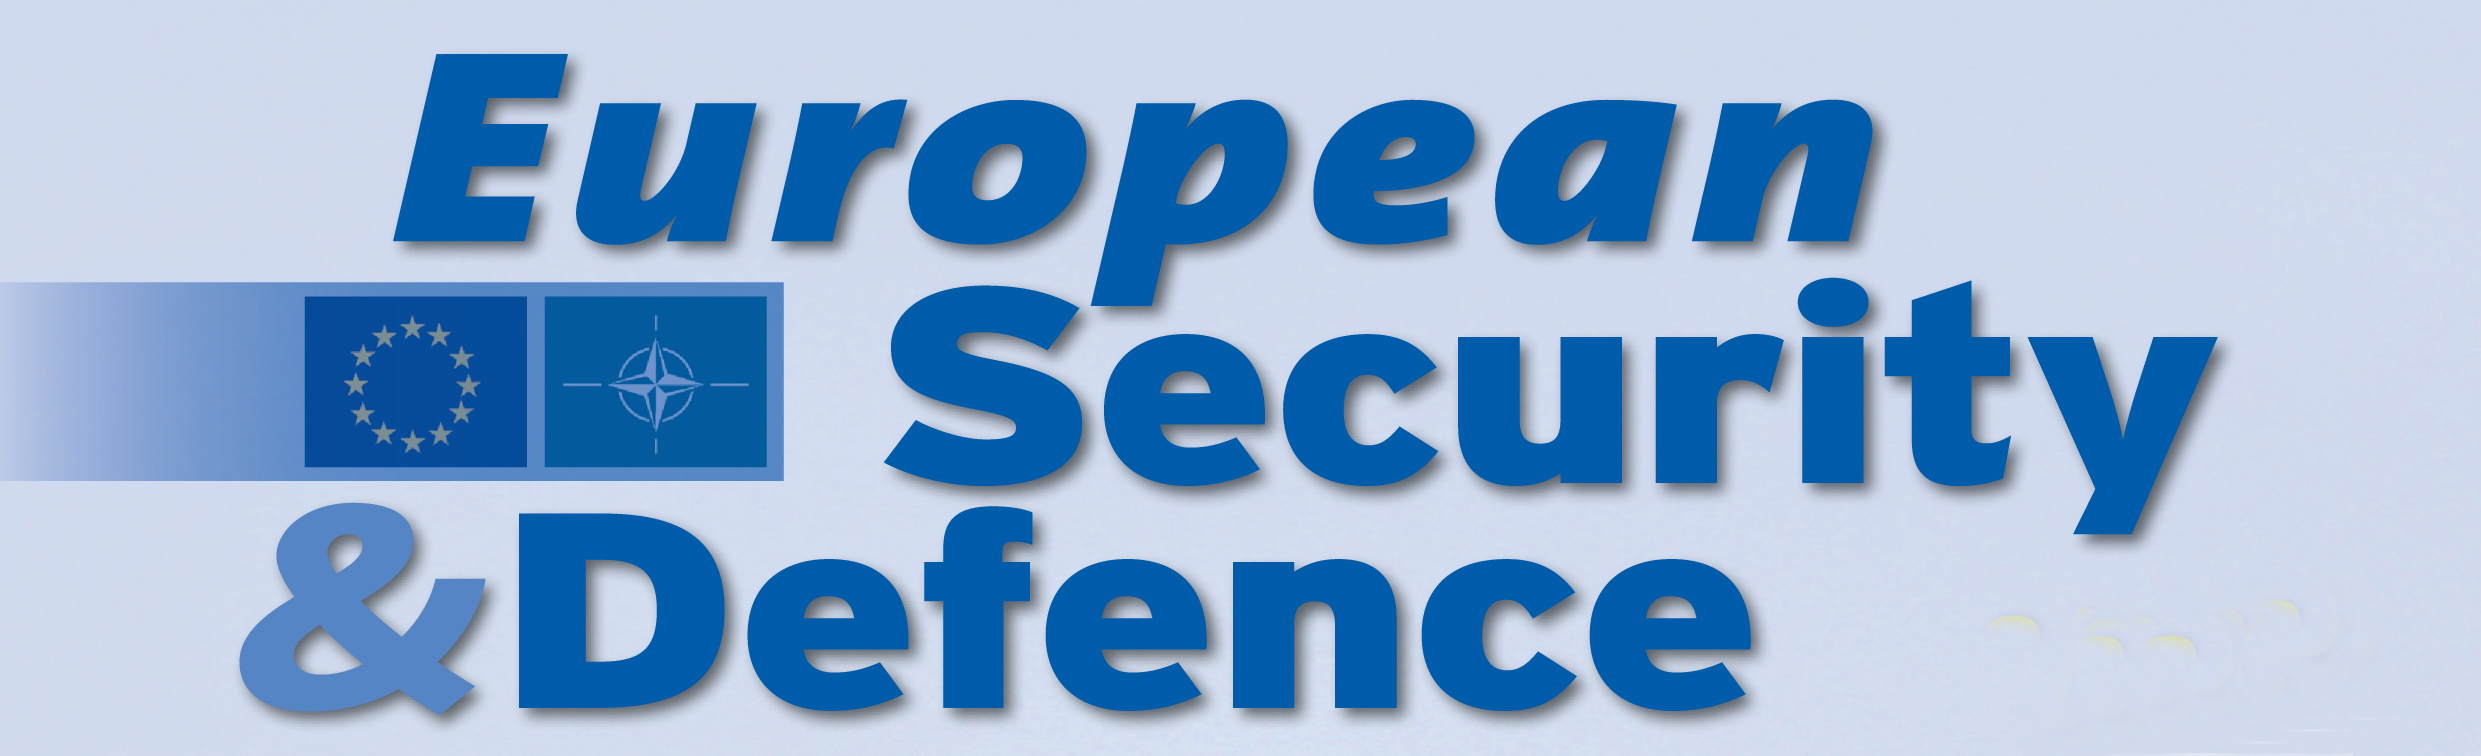 European Security & Defence